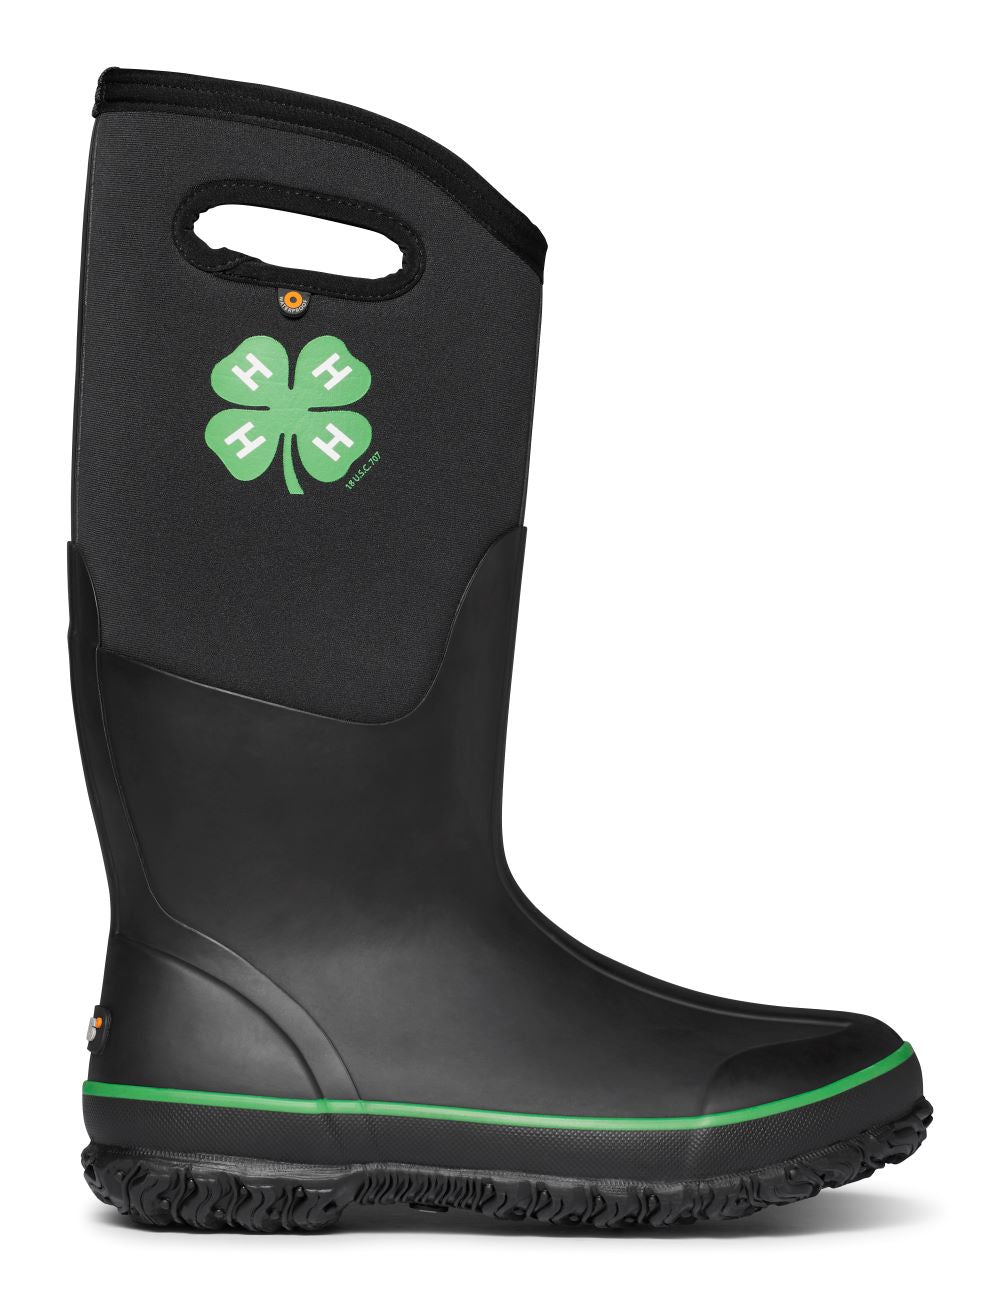 'BOGS' Women's Classic Tall 4H Farm Boot - Black